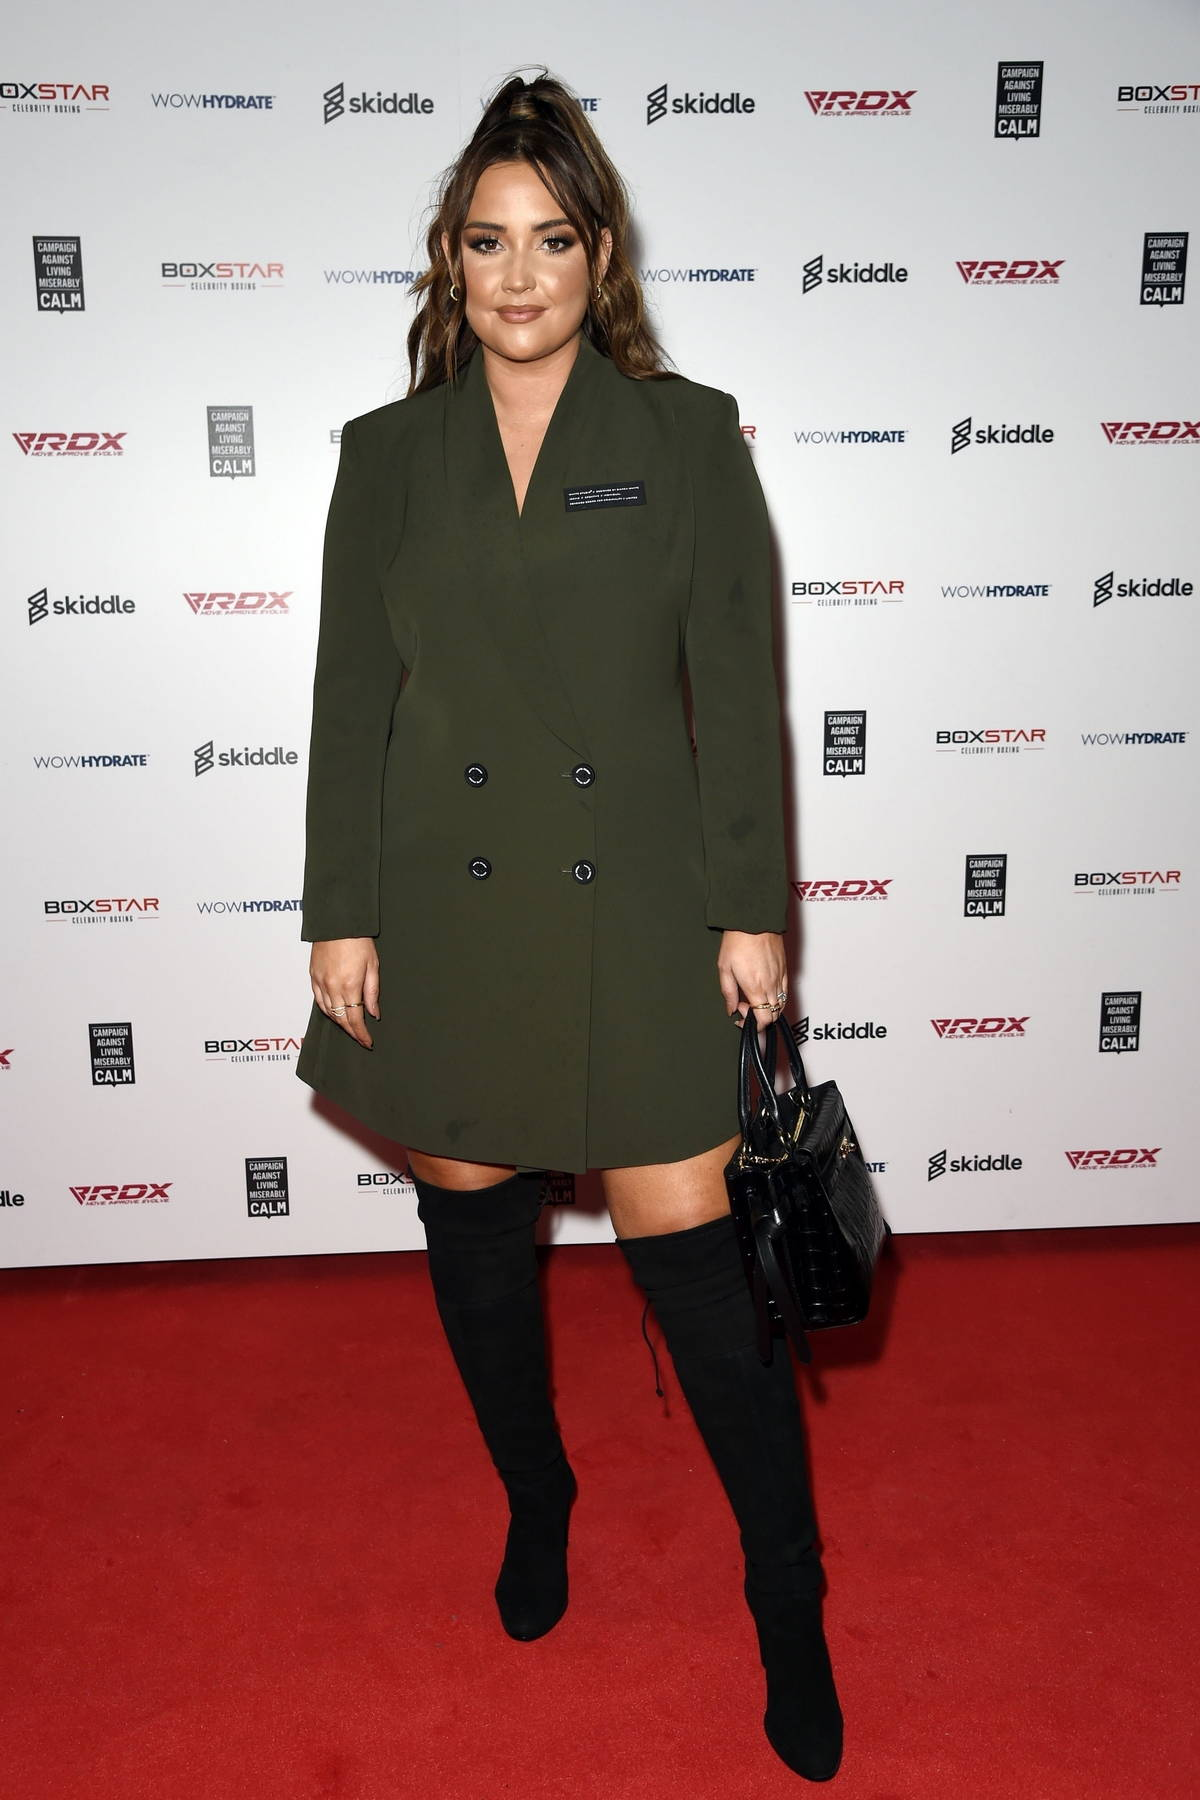 Jacqueline Jossa attends The Boxstar Celebrity Boxing Event at The 02 Arena in Manchester, UK